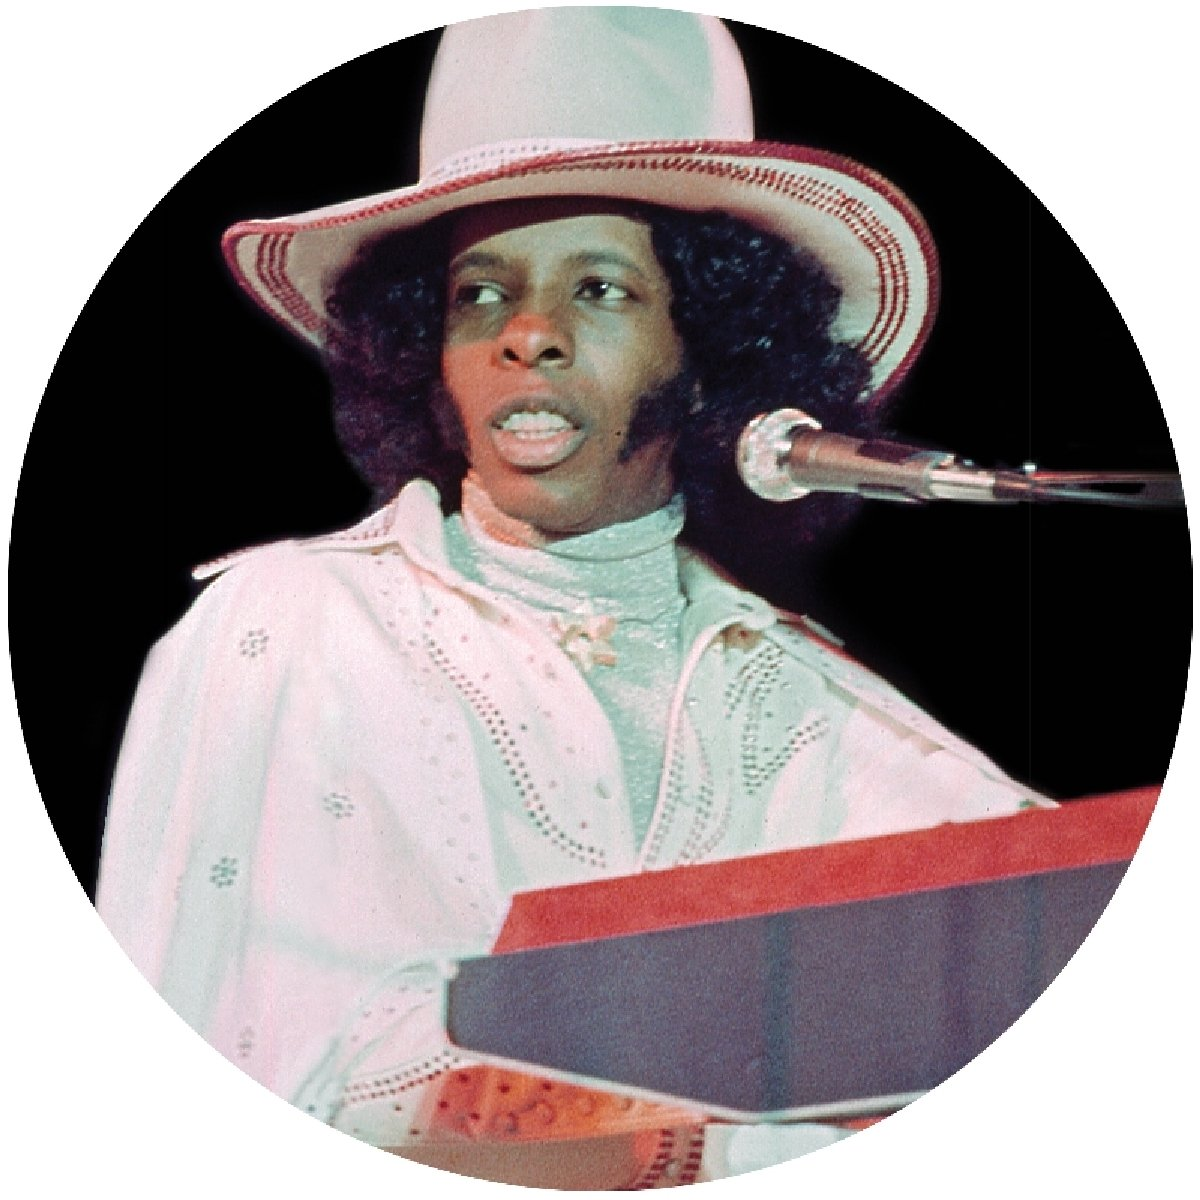 Sly Stone - Family Affair - The Very Best Of (Limited Edition, Picture Disc Vinyl LP)